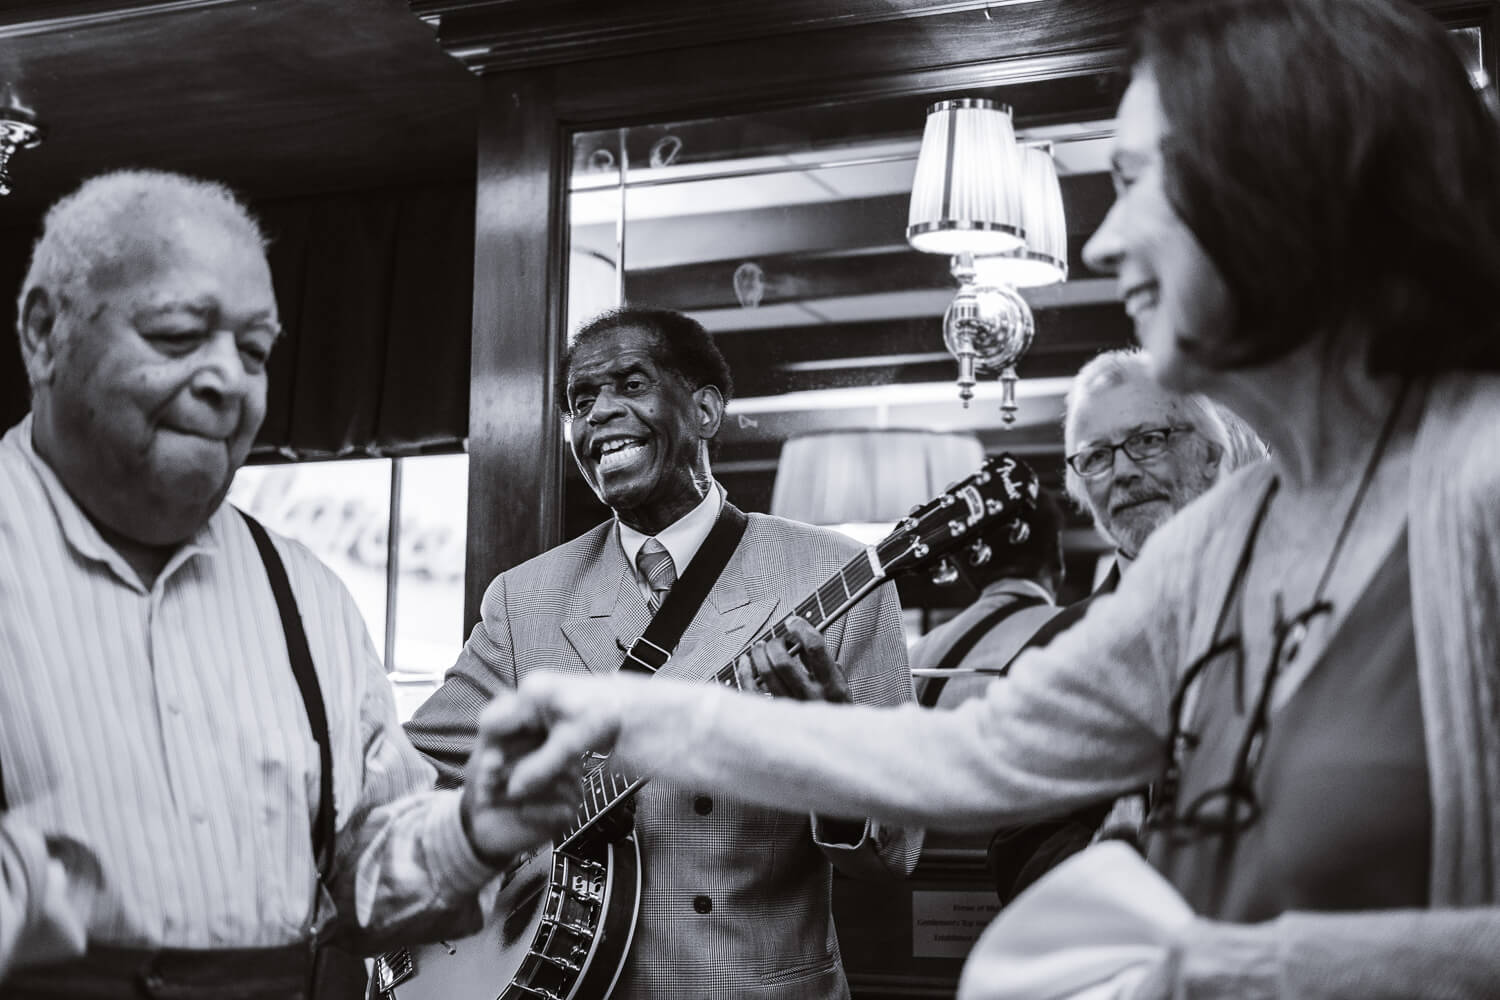 """Jazz brunch at Mr. B's Bistro - Travel photography and guide by © Natasha Lequepeys for """"And Then I Met Yoko"""". #neworleans #nola #photoblog #streetphotography #travelitinerary #fujifilm"""